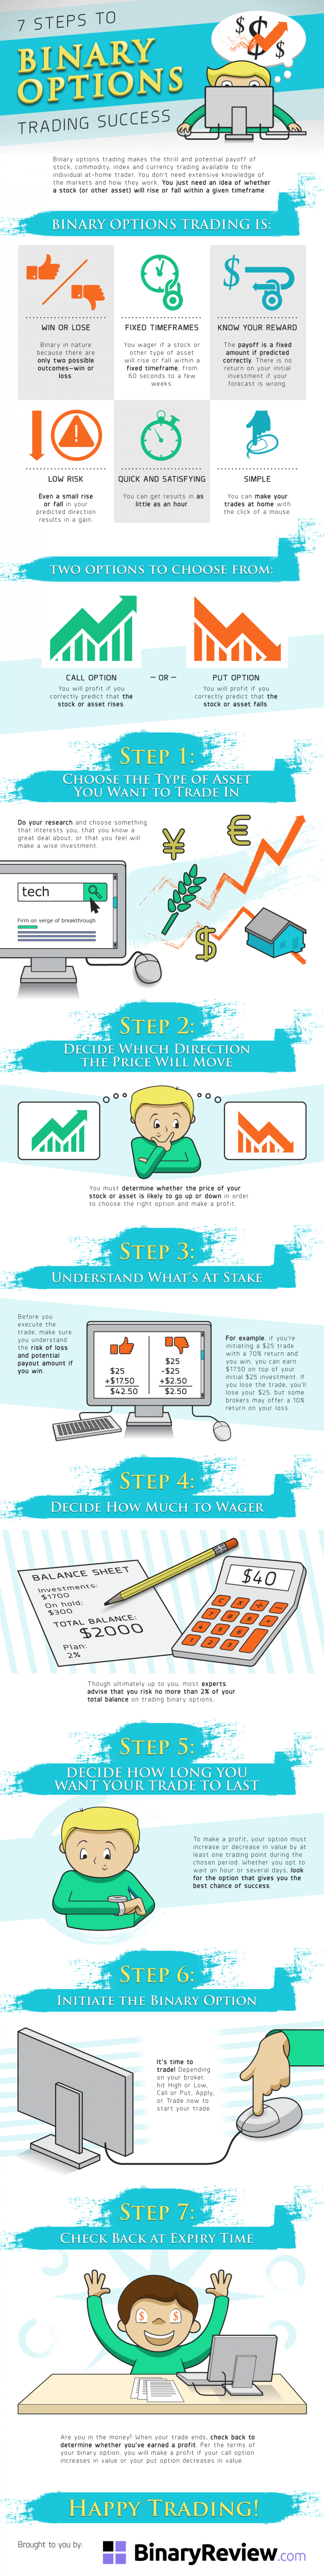 7 Steps to Binary Options Trading Success Infographic